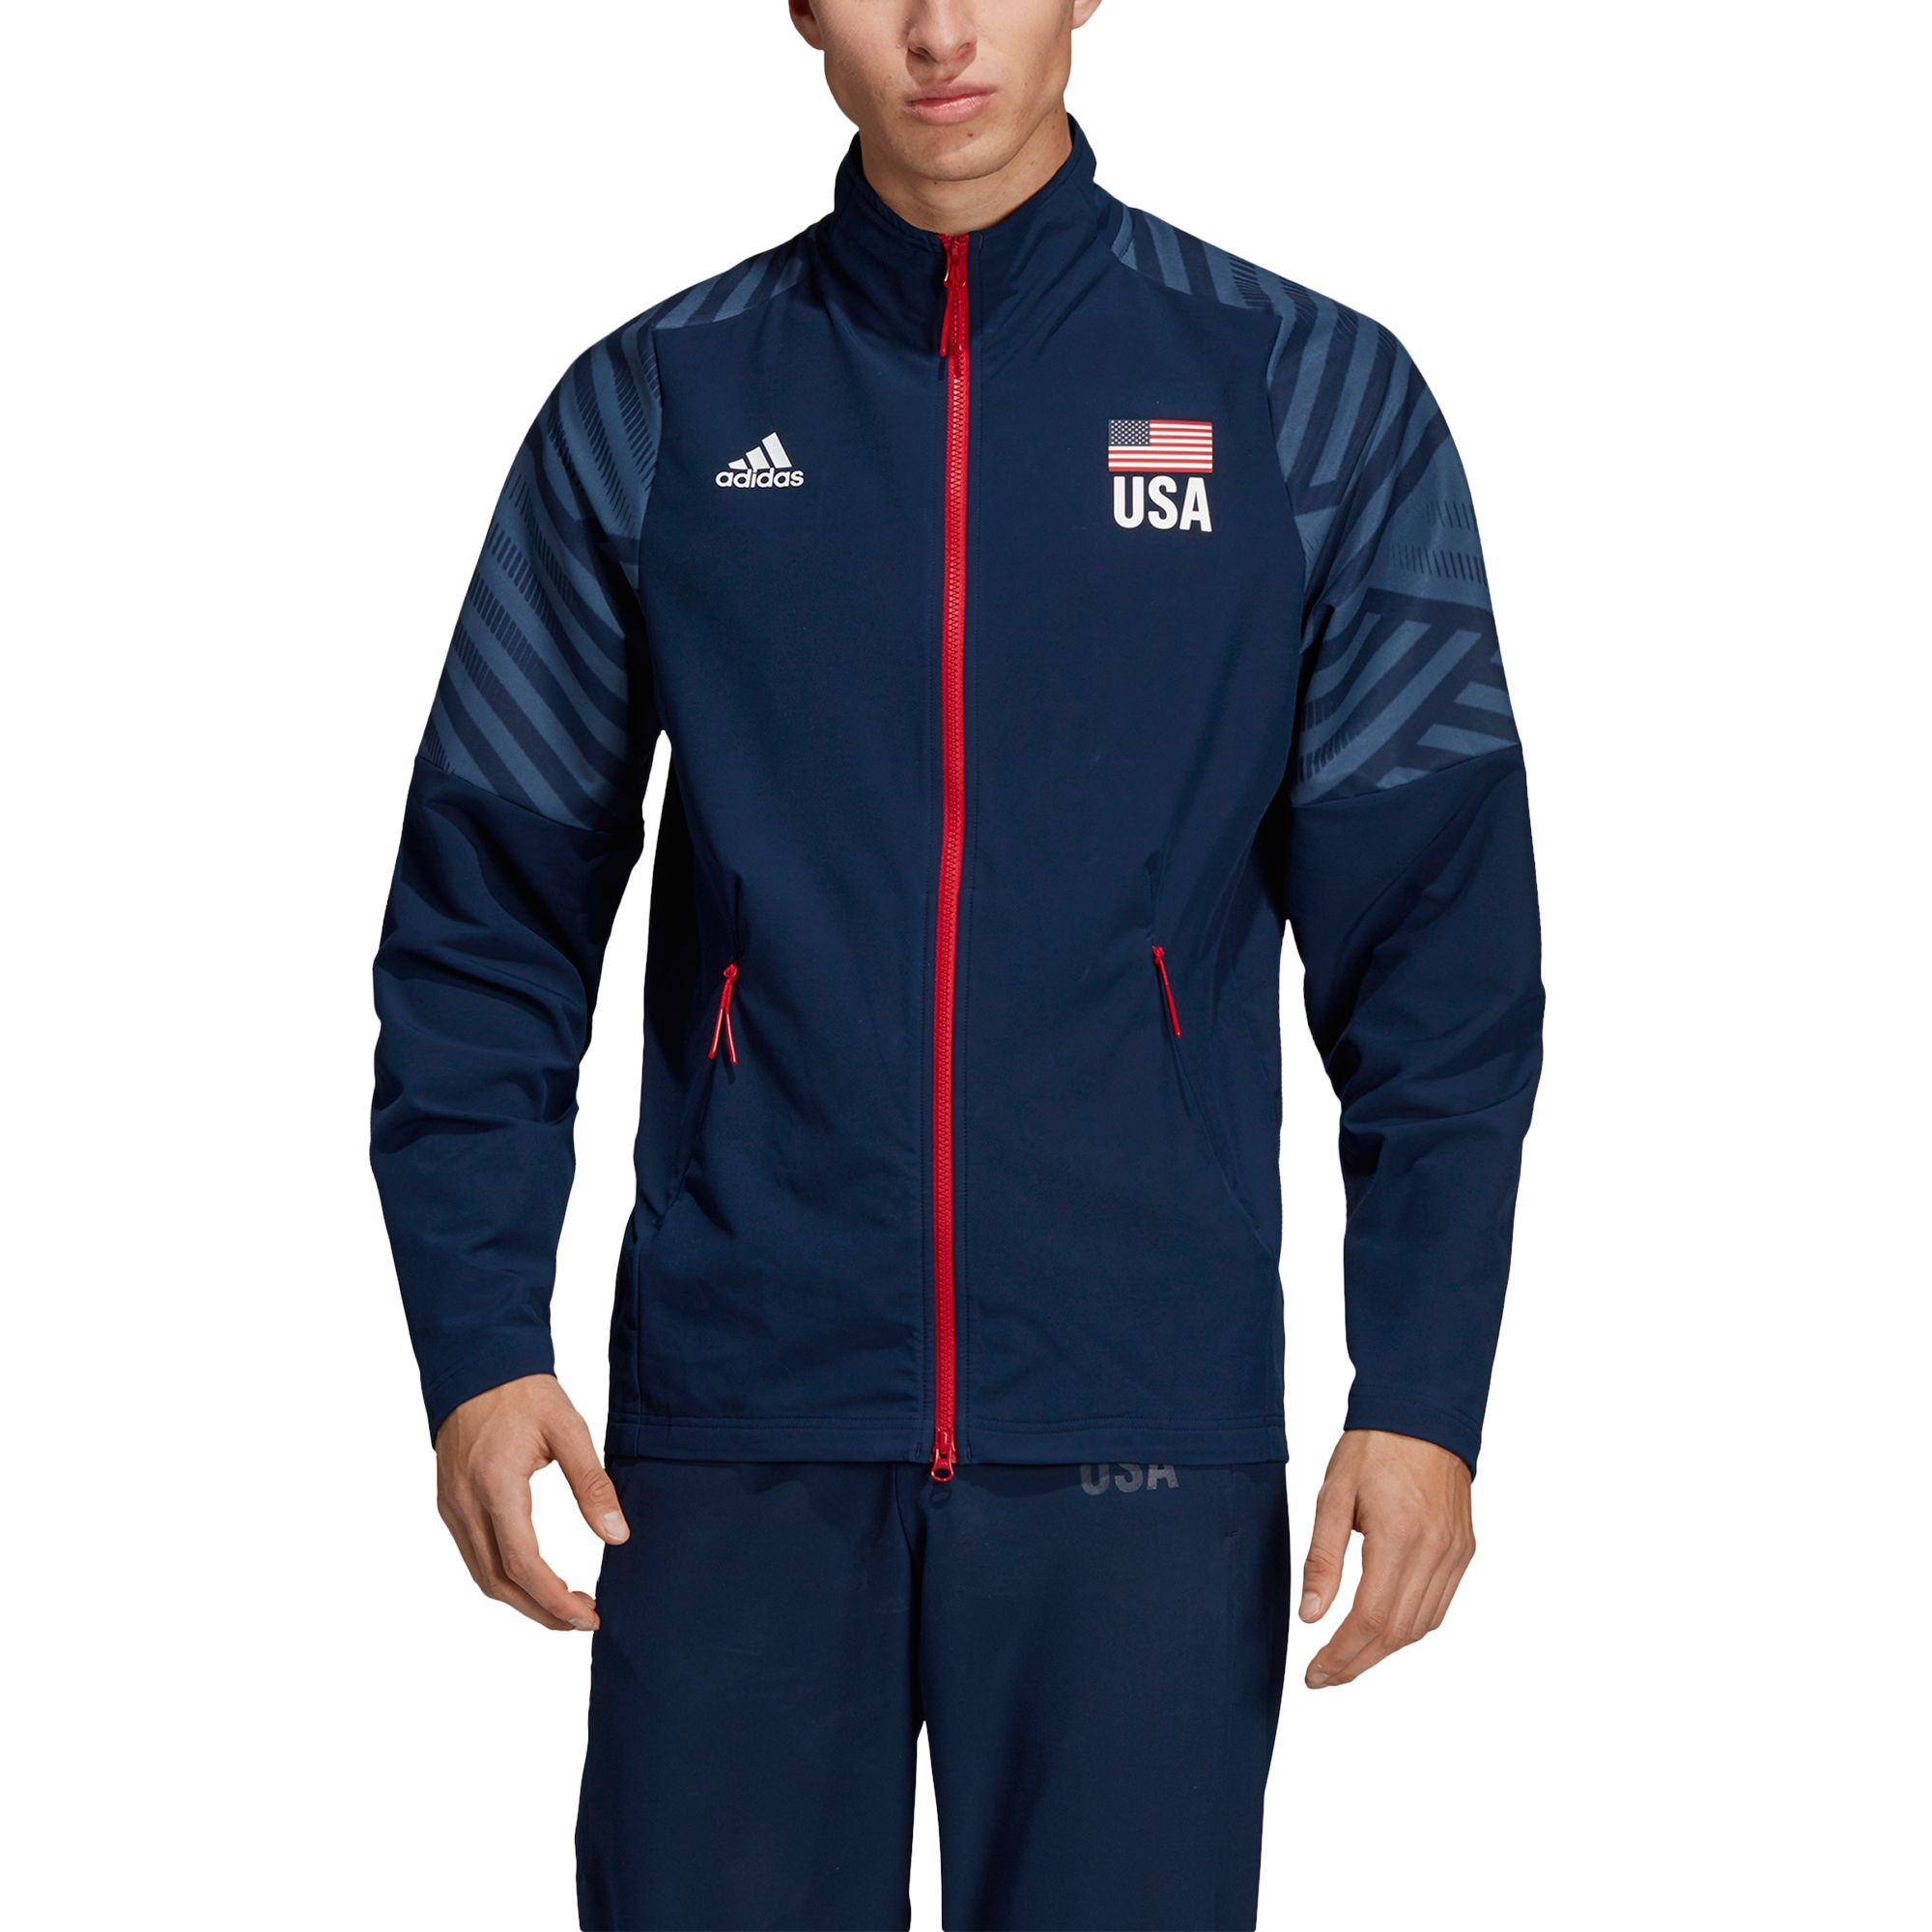 Adidas Men's USA Volleyball Warm Up Jacket in 2019